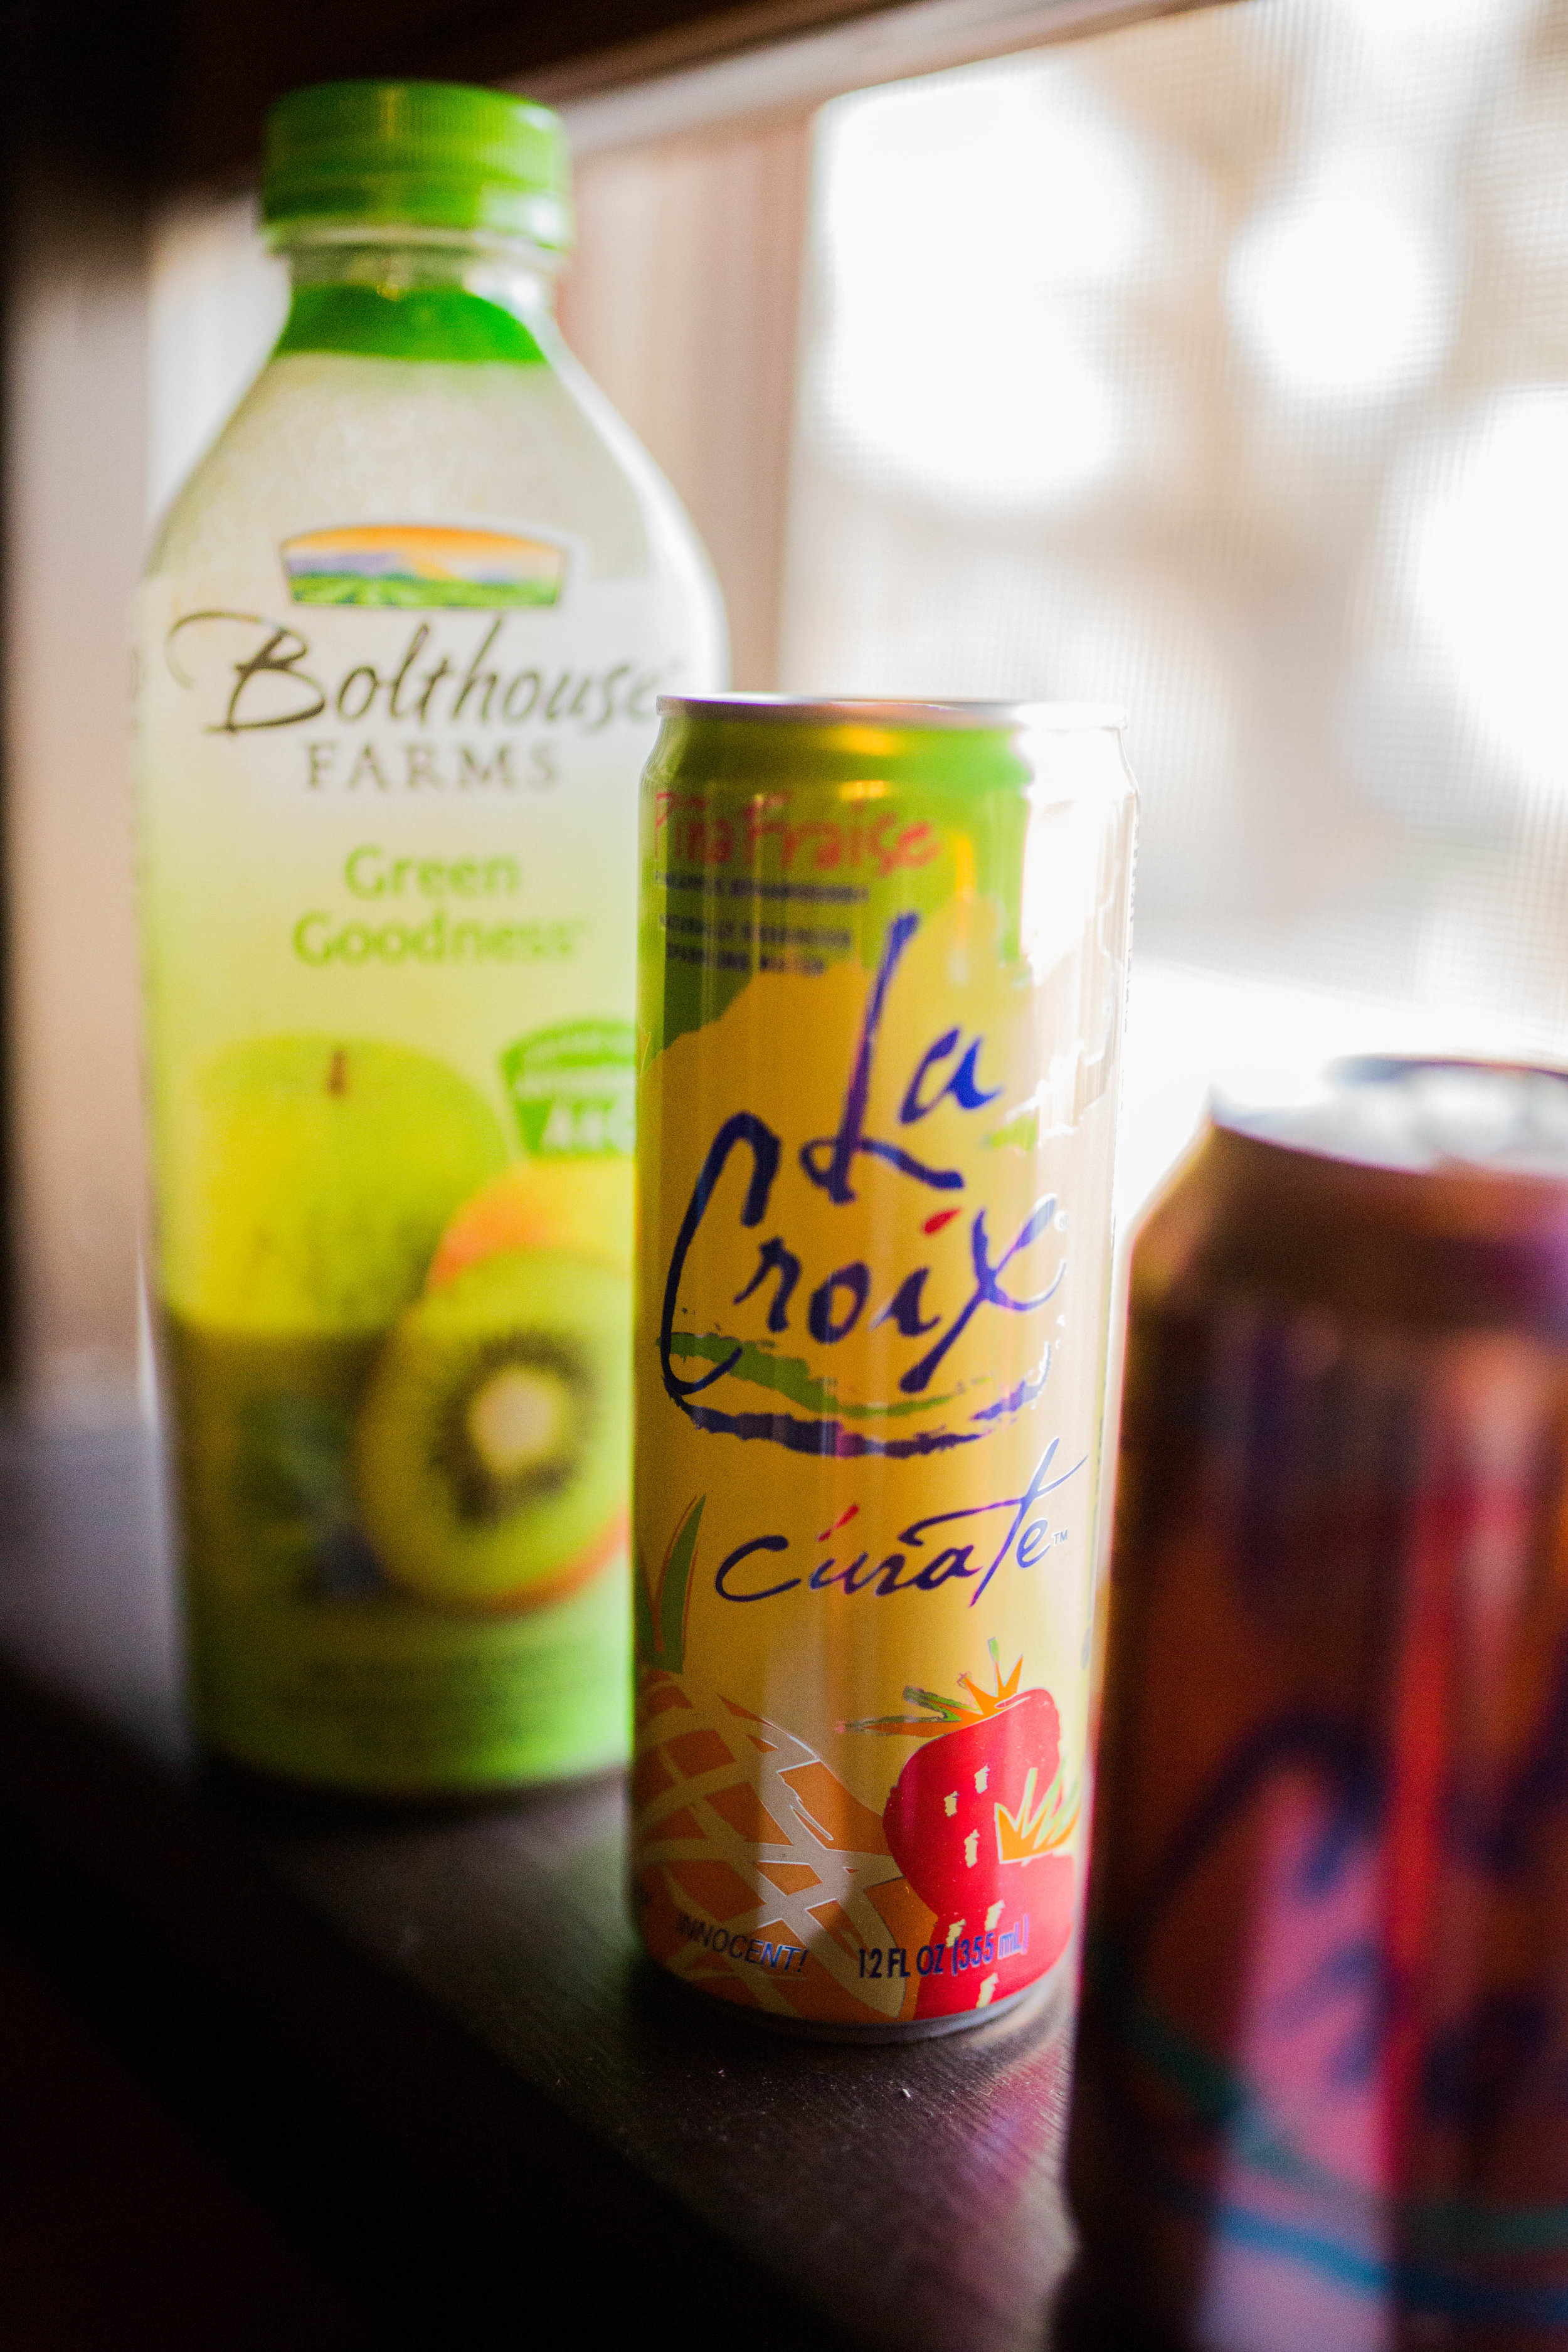 I am a total drink girl. Always feel better if I have something pretty to sip on. I ditched the soda and will instead grab a La Croix, Bolthouse smootie or Kombucha out of the fridge.